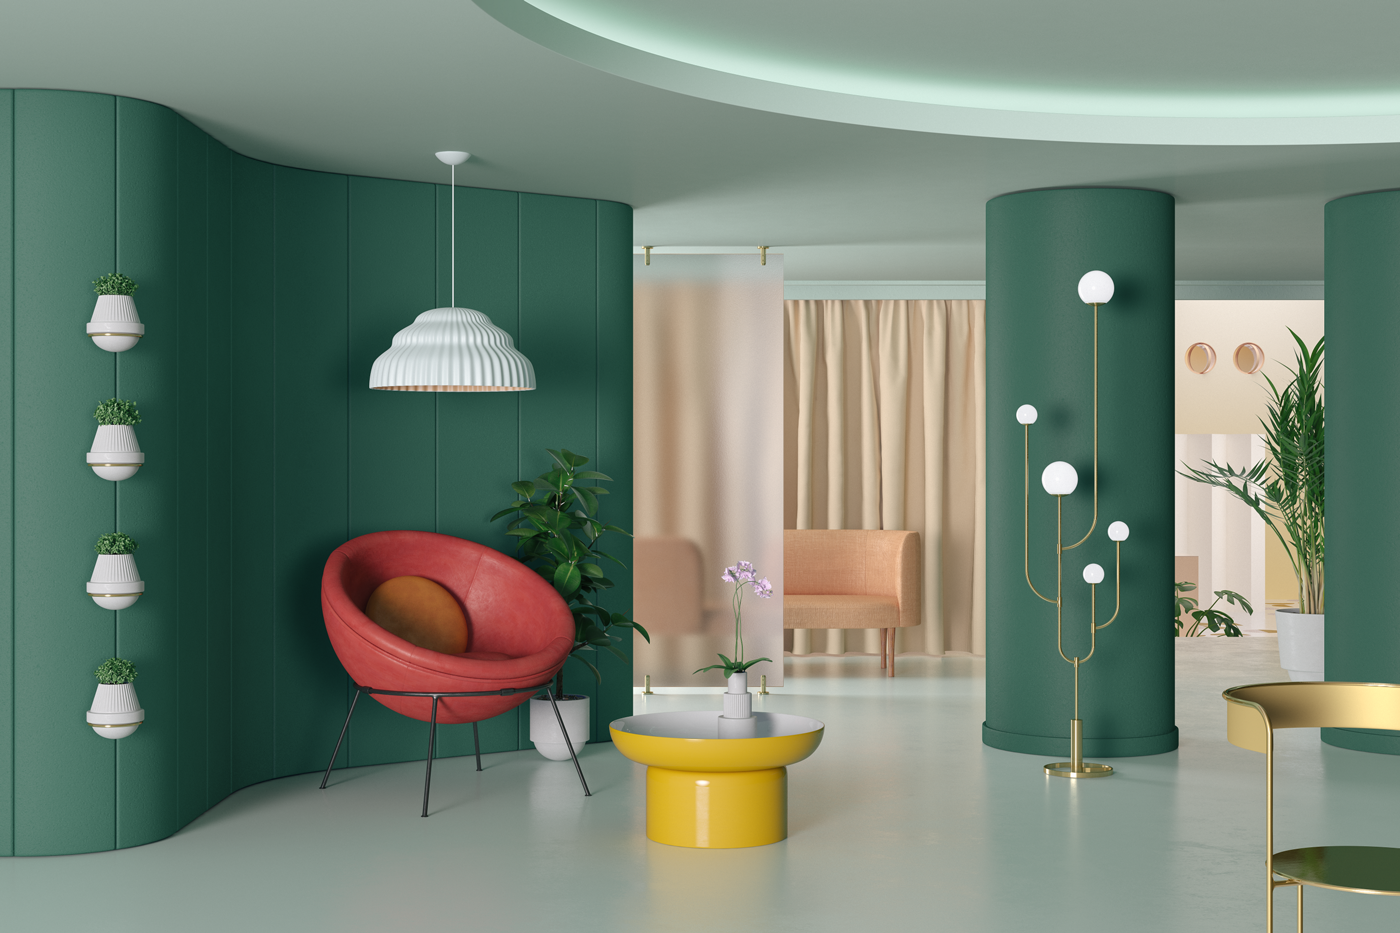 Seasons The Project Where A Modern Floor Lamp Changes Everything 7 modern floor lamp Seasons : The Project Where A Modern Floor Lamp Changes Everything Seasons The Project Where A Modern Floor Lamp Changes Everything 7